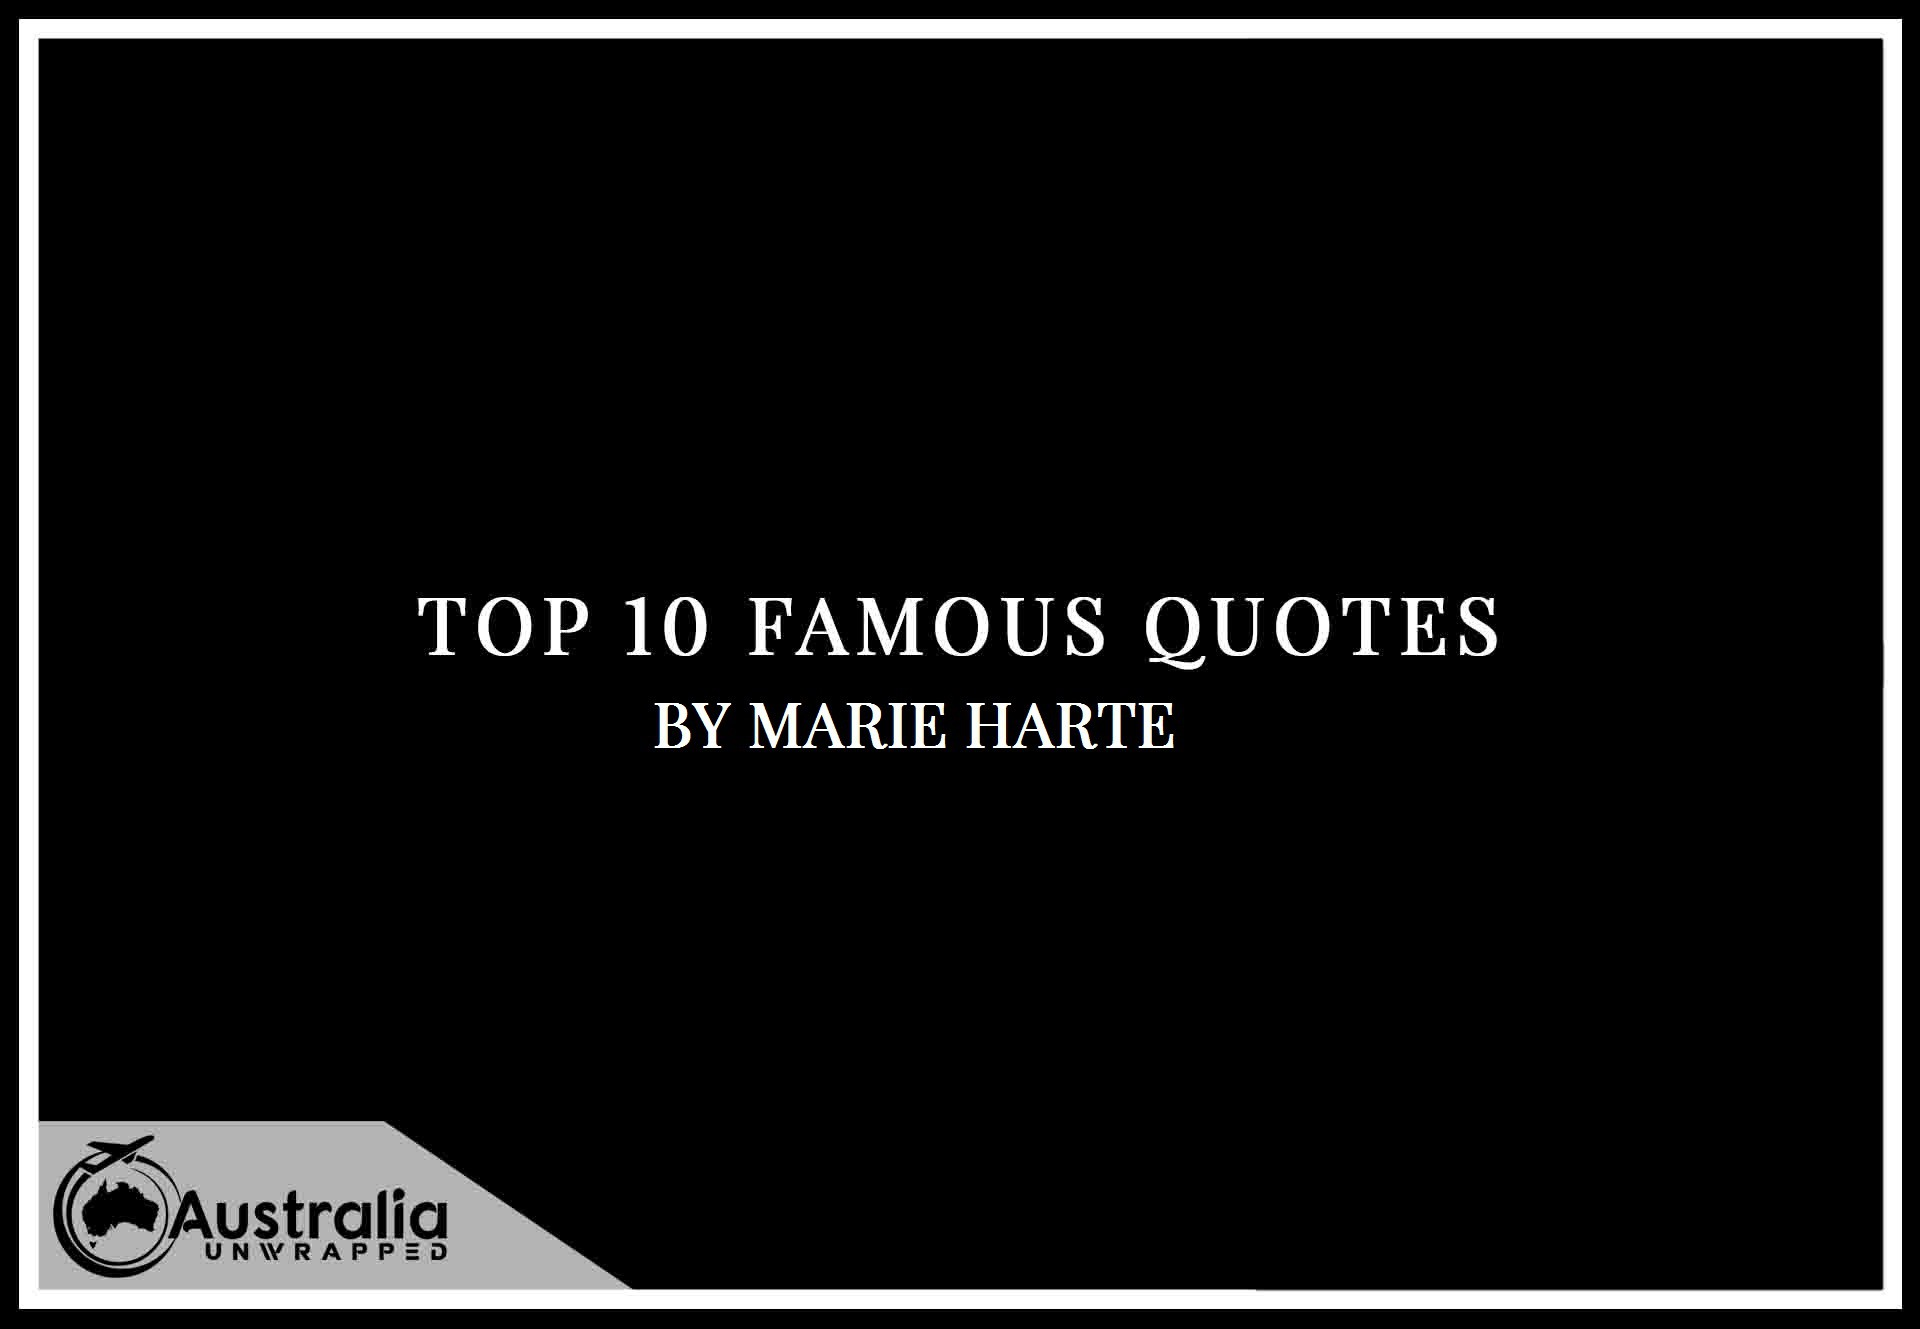 Marie Harte's Top 10 Popular and Famous Quotes